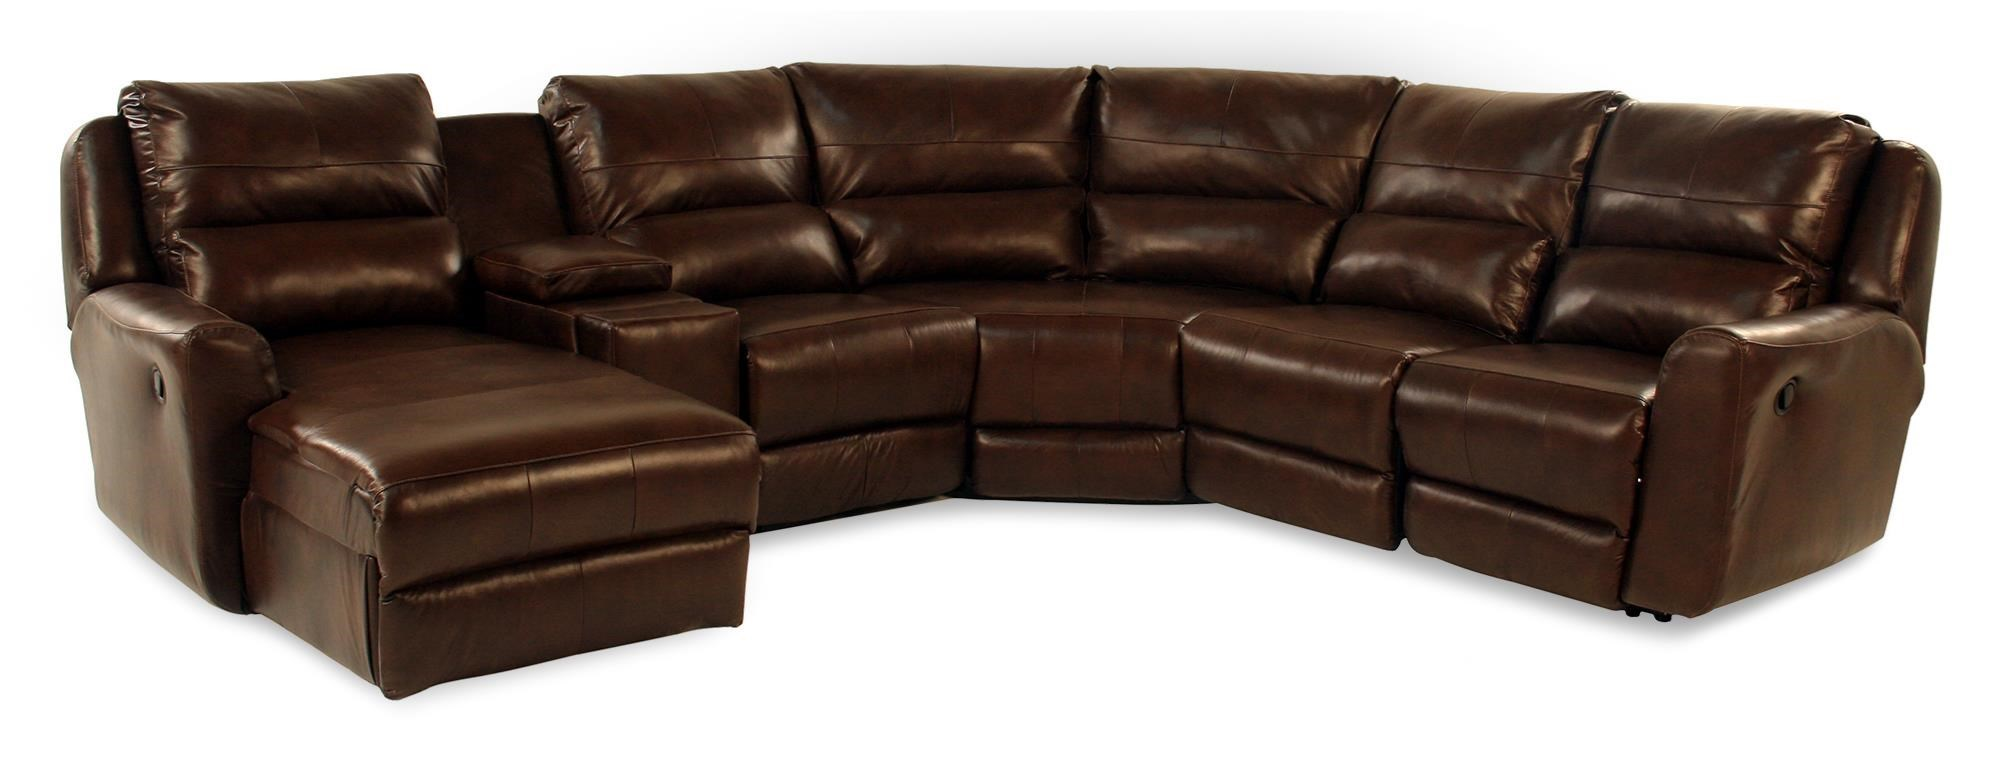 Leather Sectional Sofa Recliner Design To Recline Director 6pc Reclining Leather Sectional